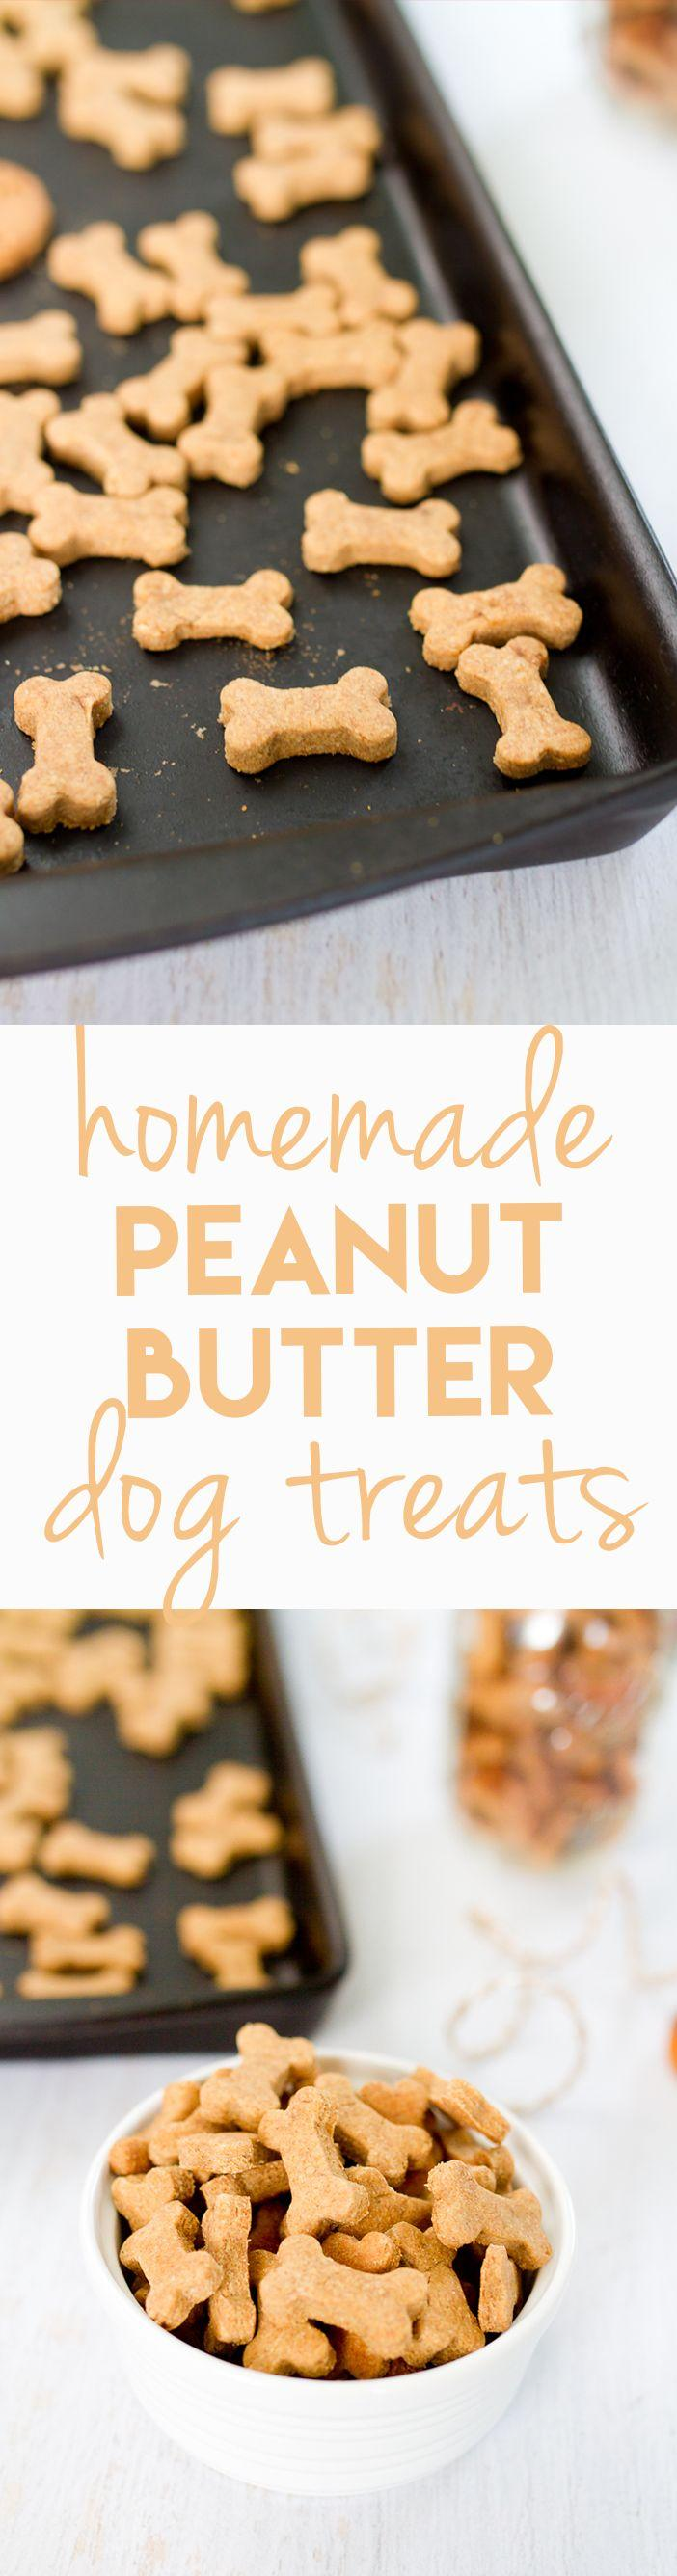 Wedding - Homemade Peanut Butter Dog Treats